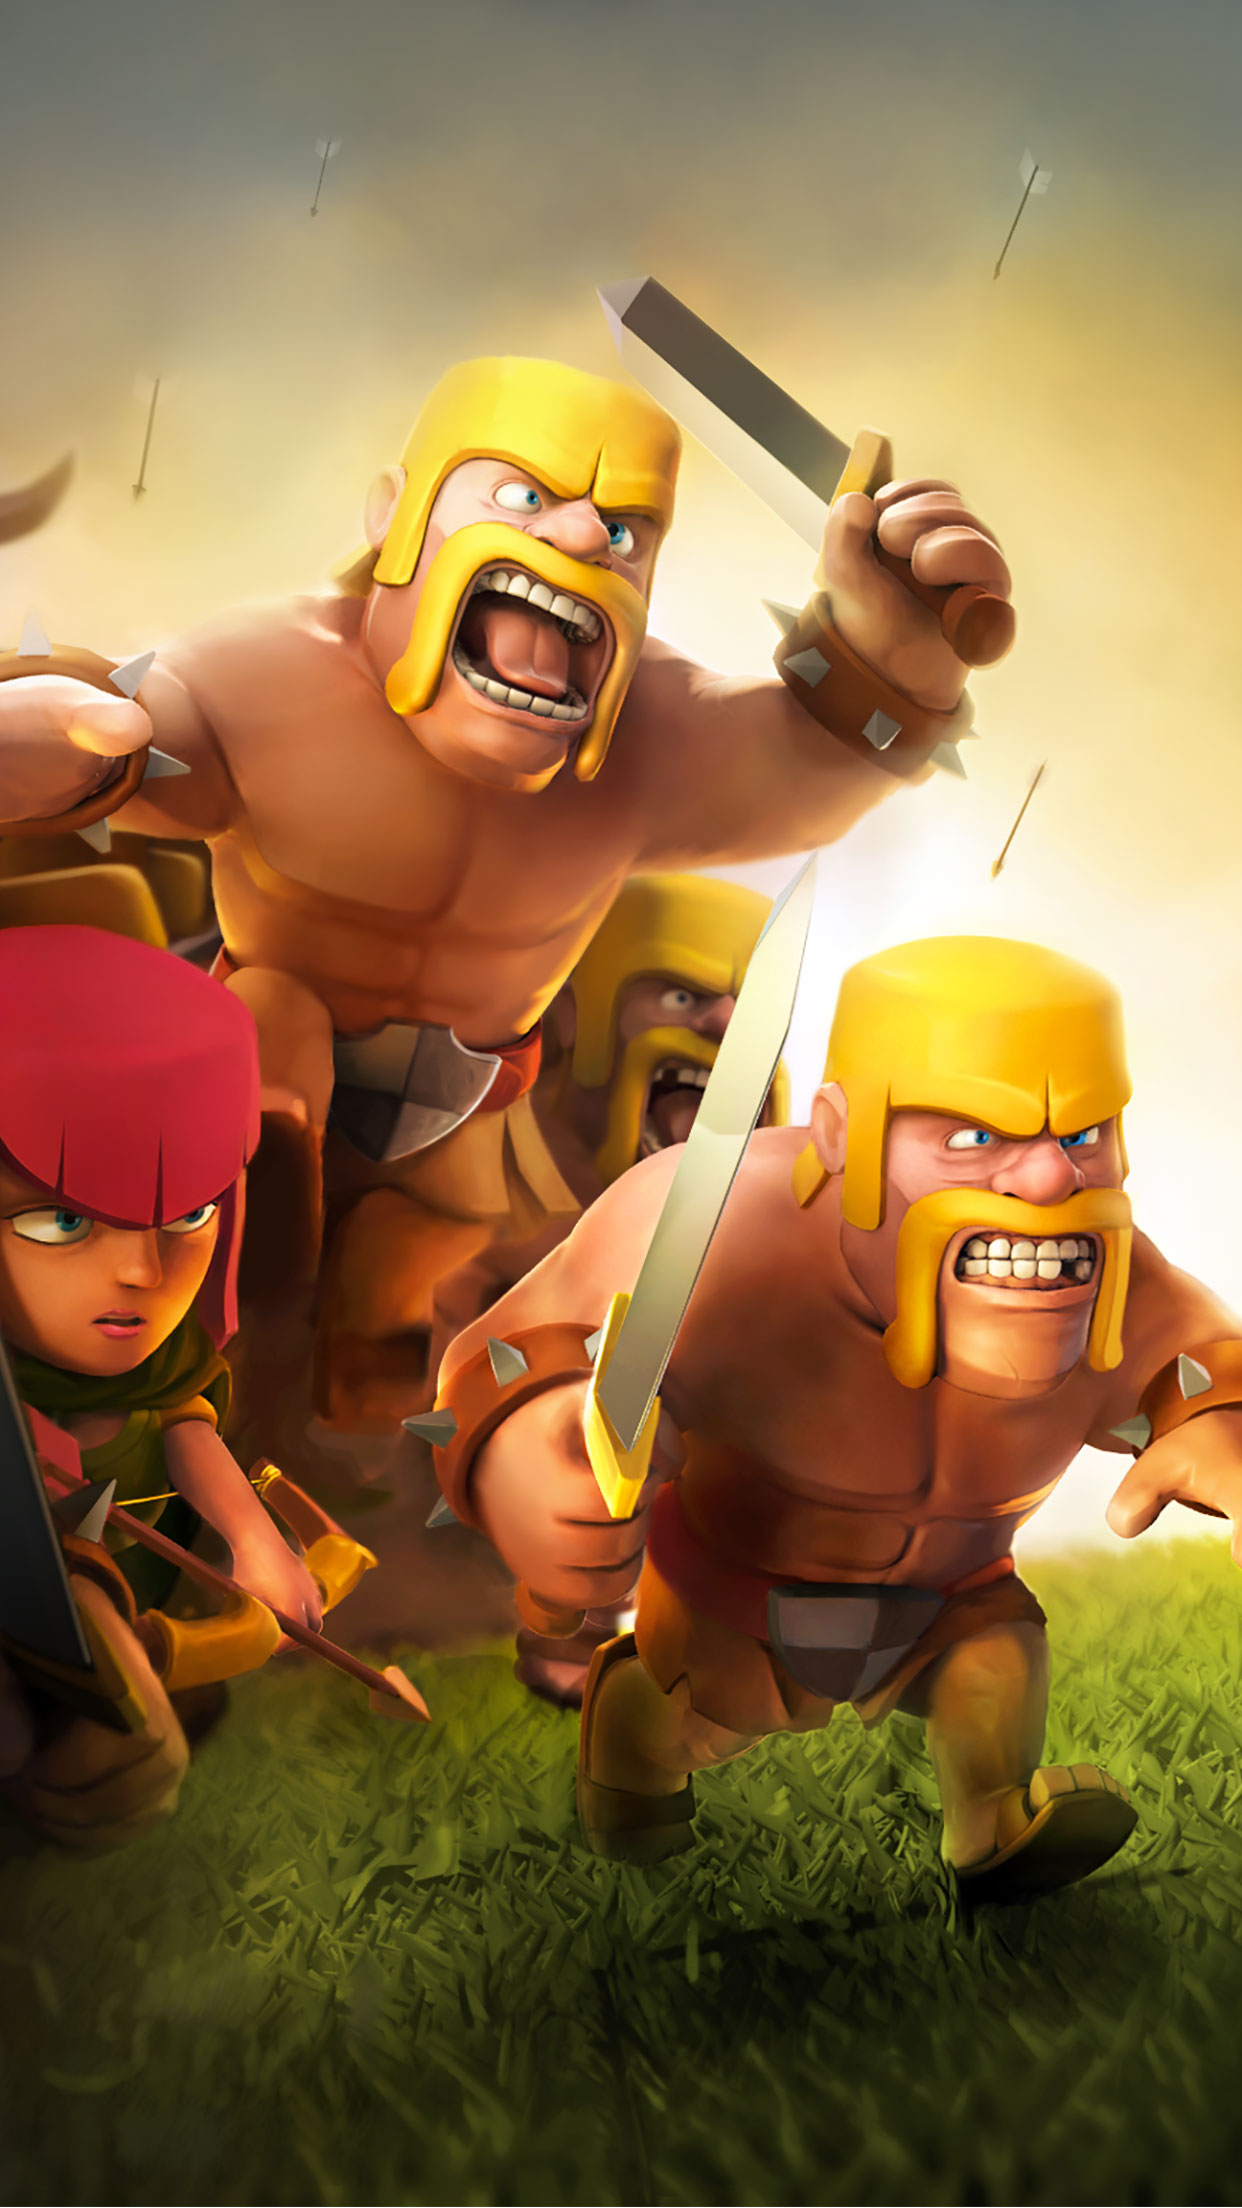 Clash Of Clans 3Wallpapers iPhone Parallax Clash Of Clans